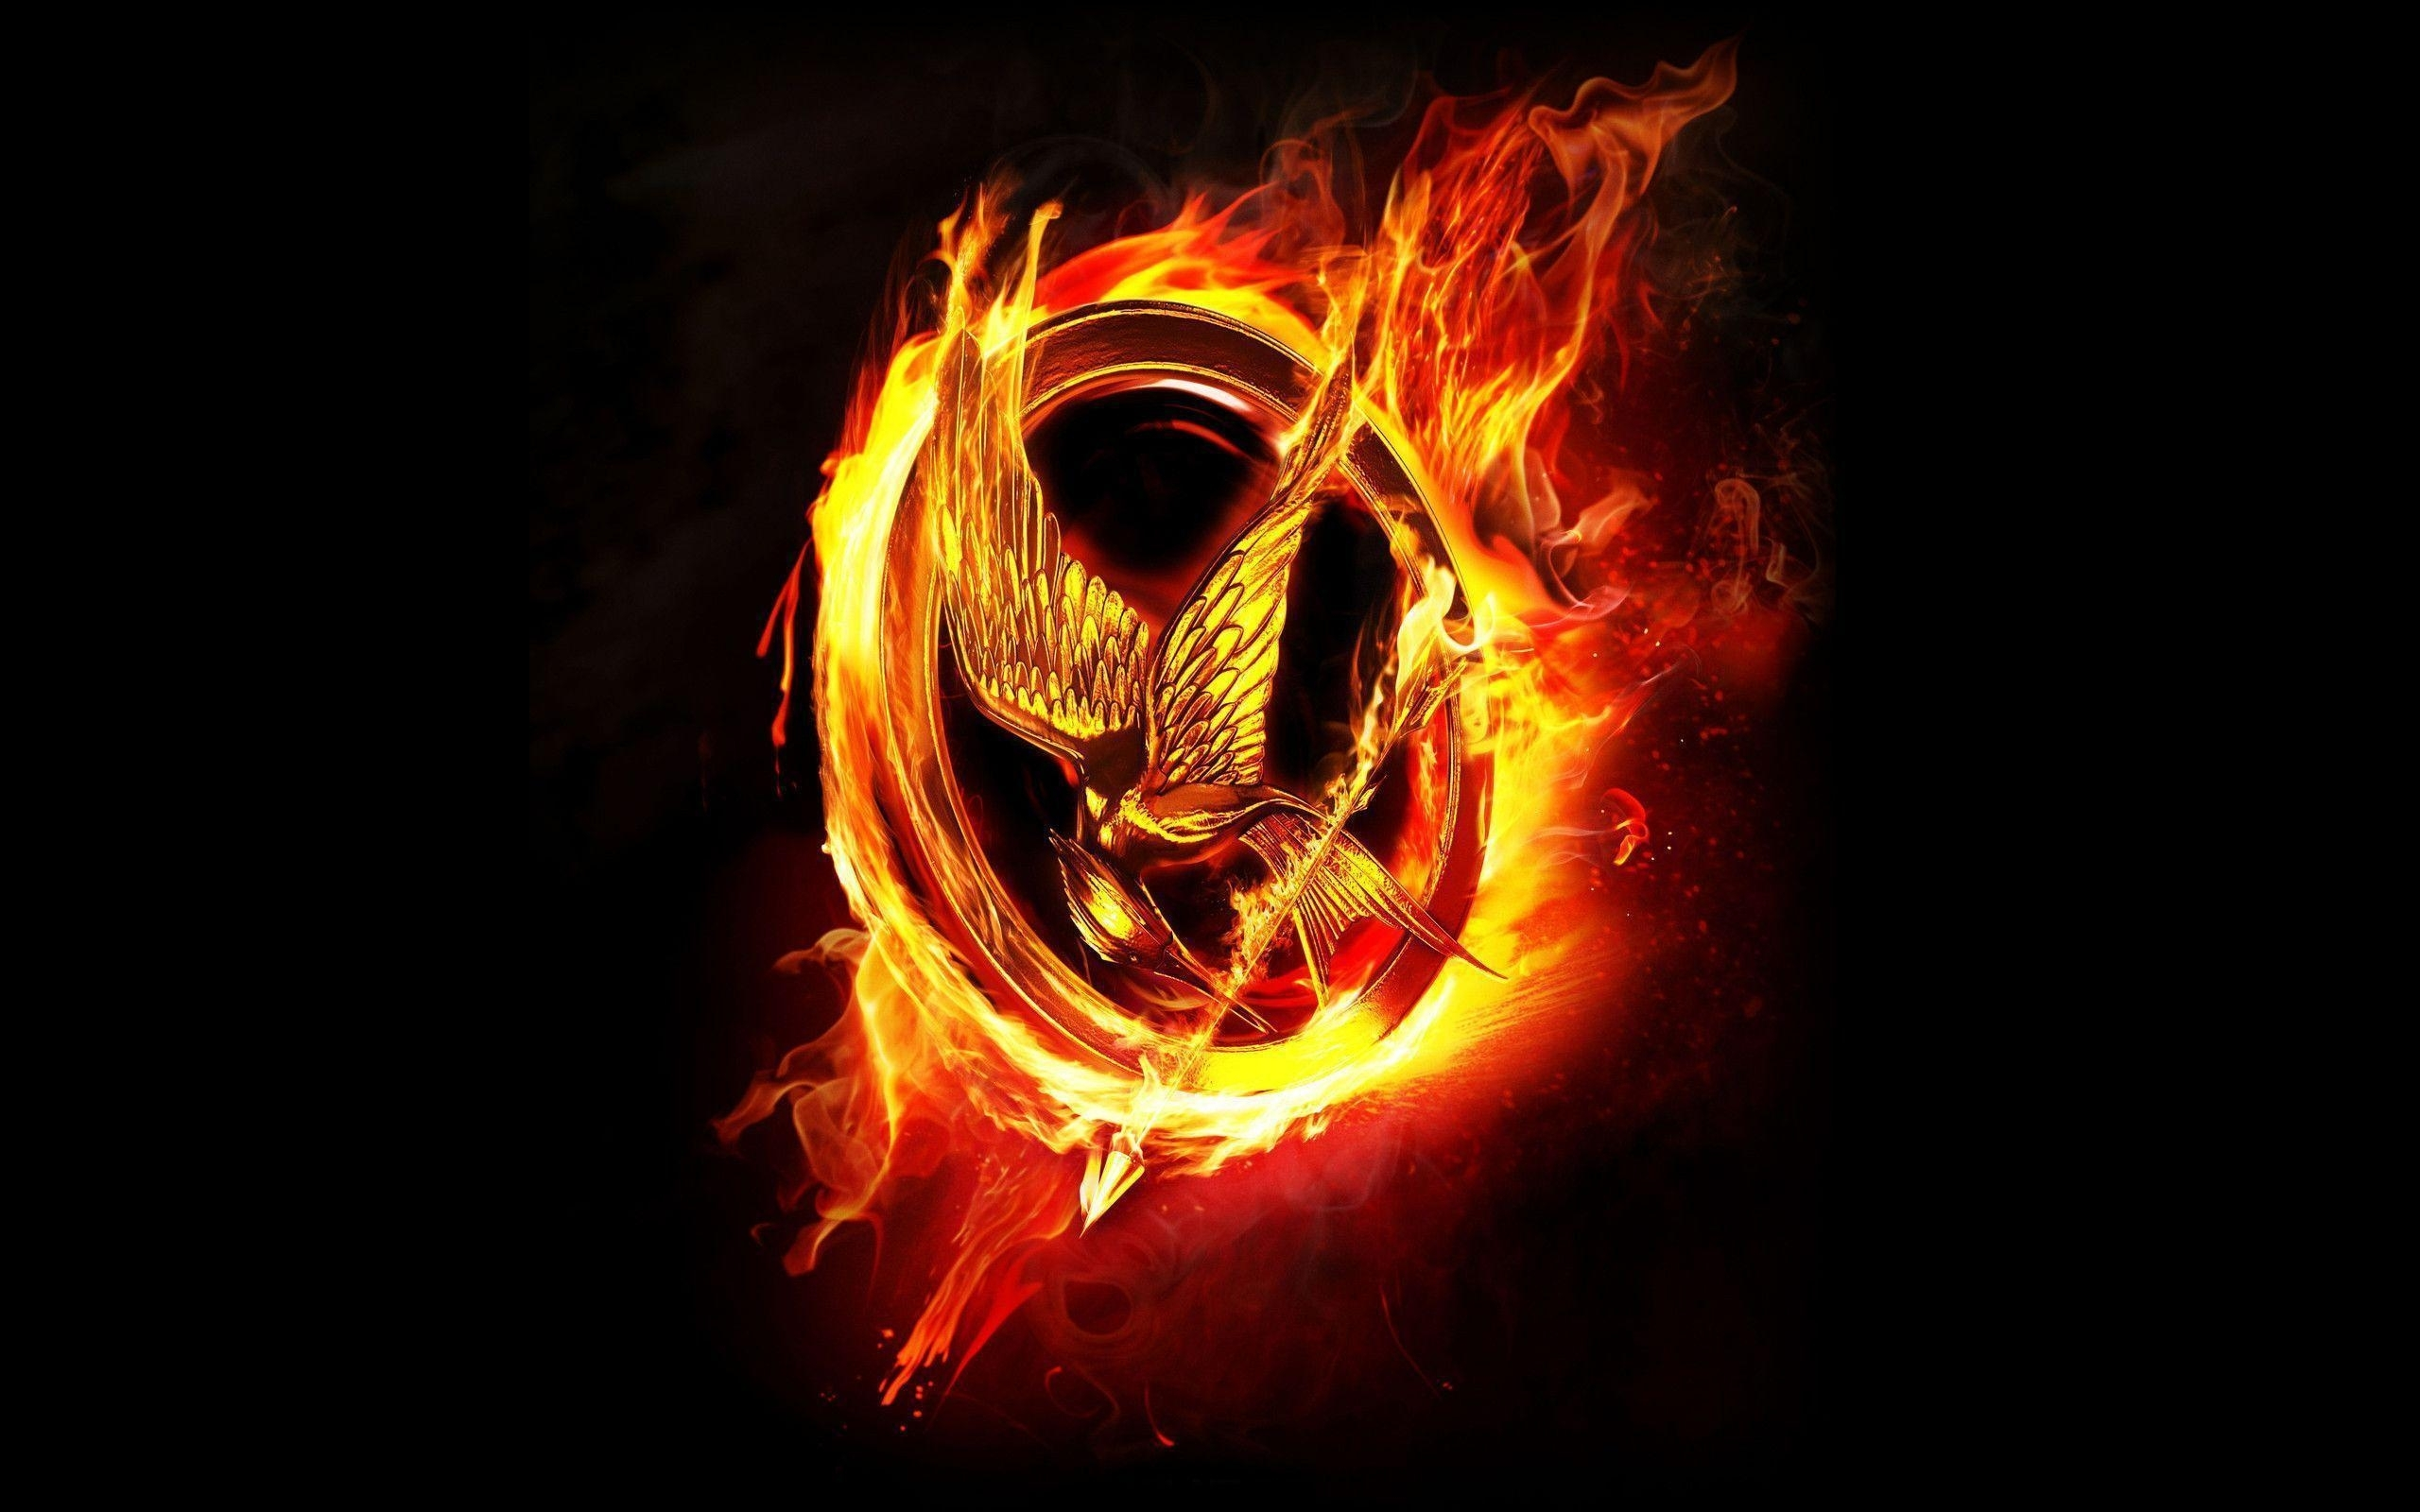 the hunger games wallpapers - wallpaper cave